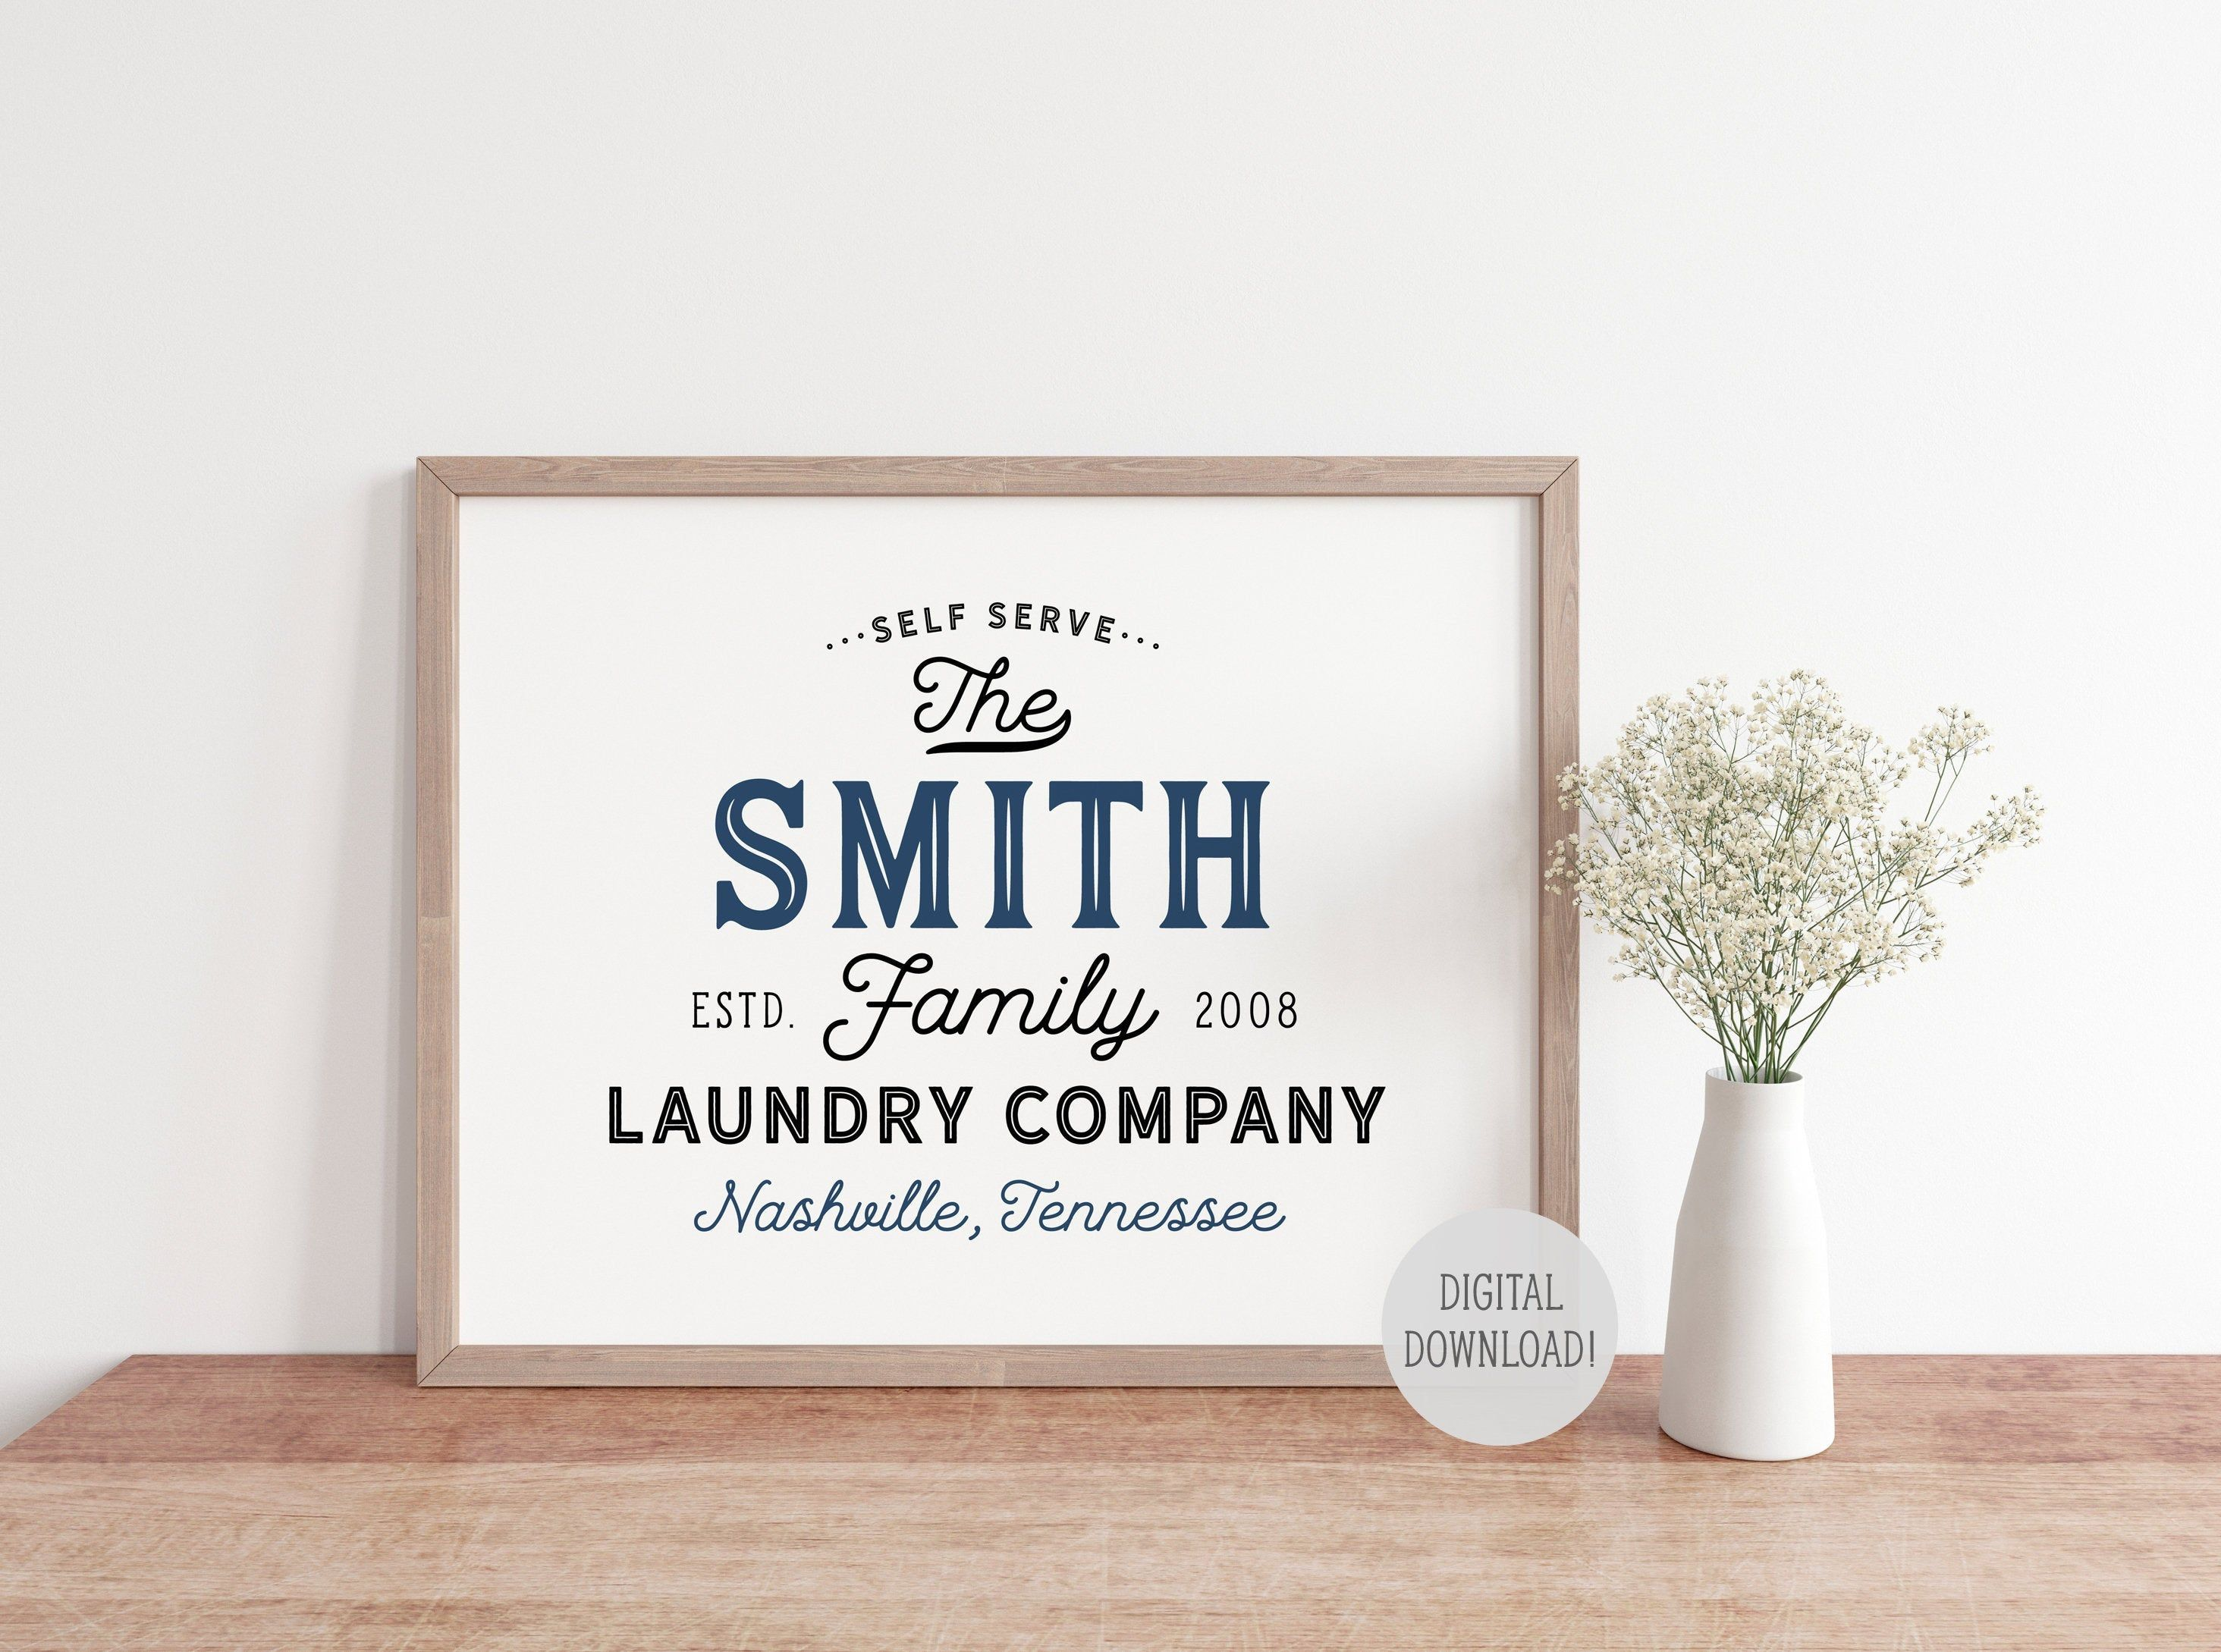 Laundry Room Printable, Personalized Laundry Sign Print, Vintage Farmhouse Wall Art Printable Rustic Laundry Co Room Decor, Digital Download